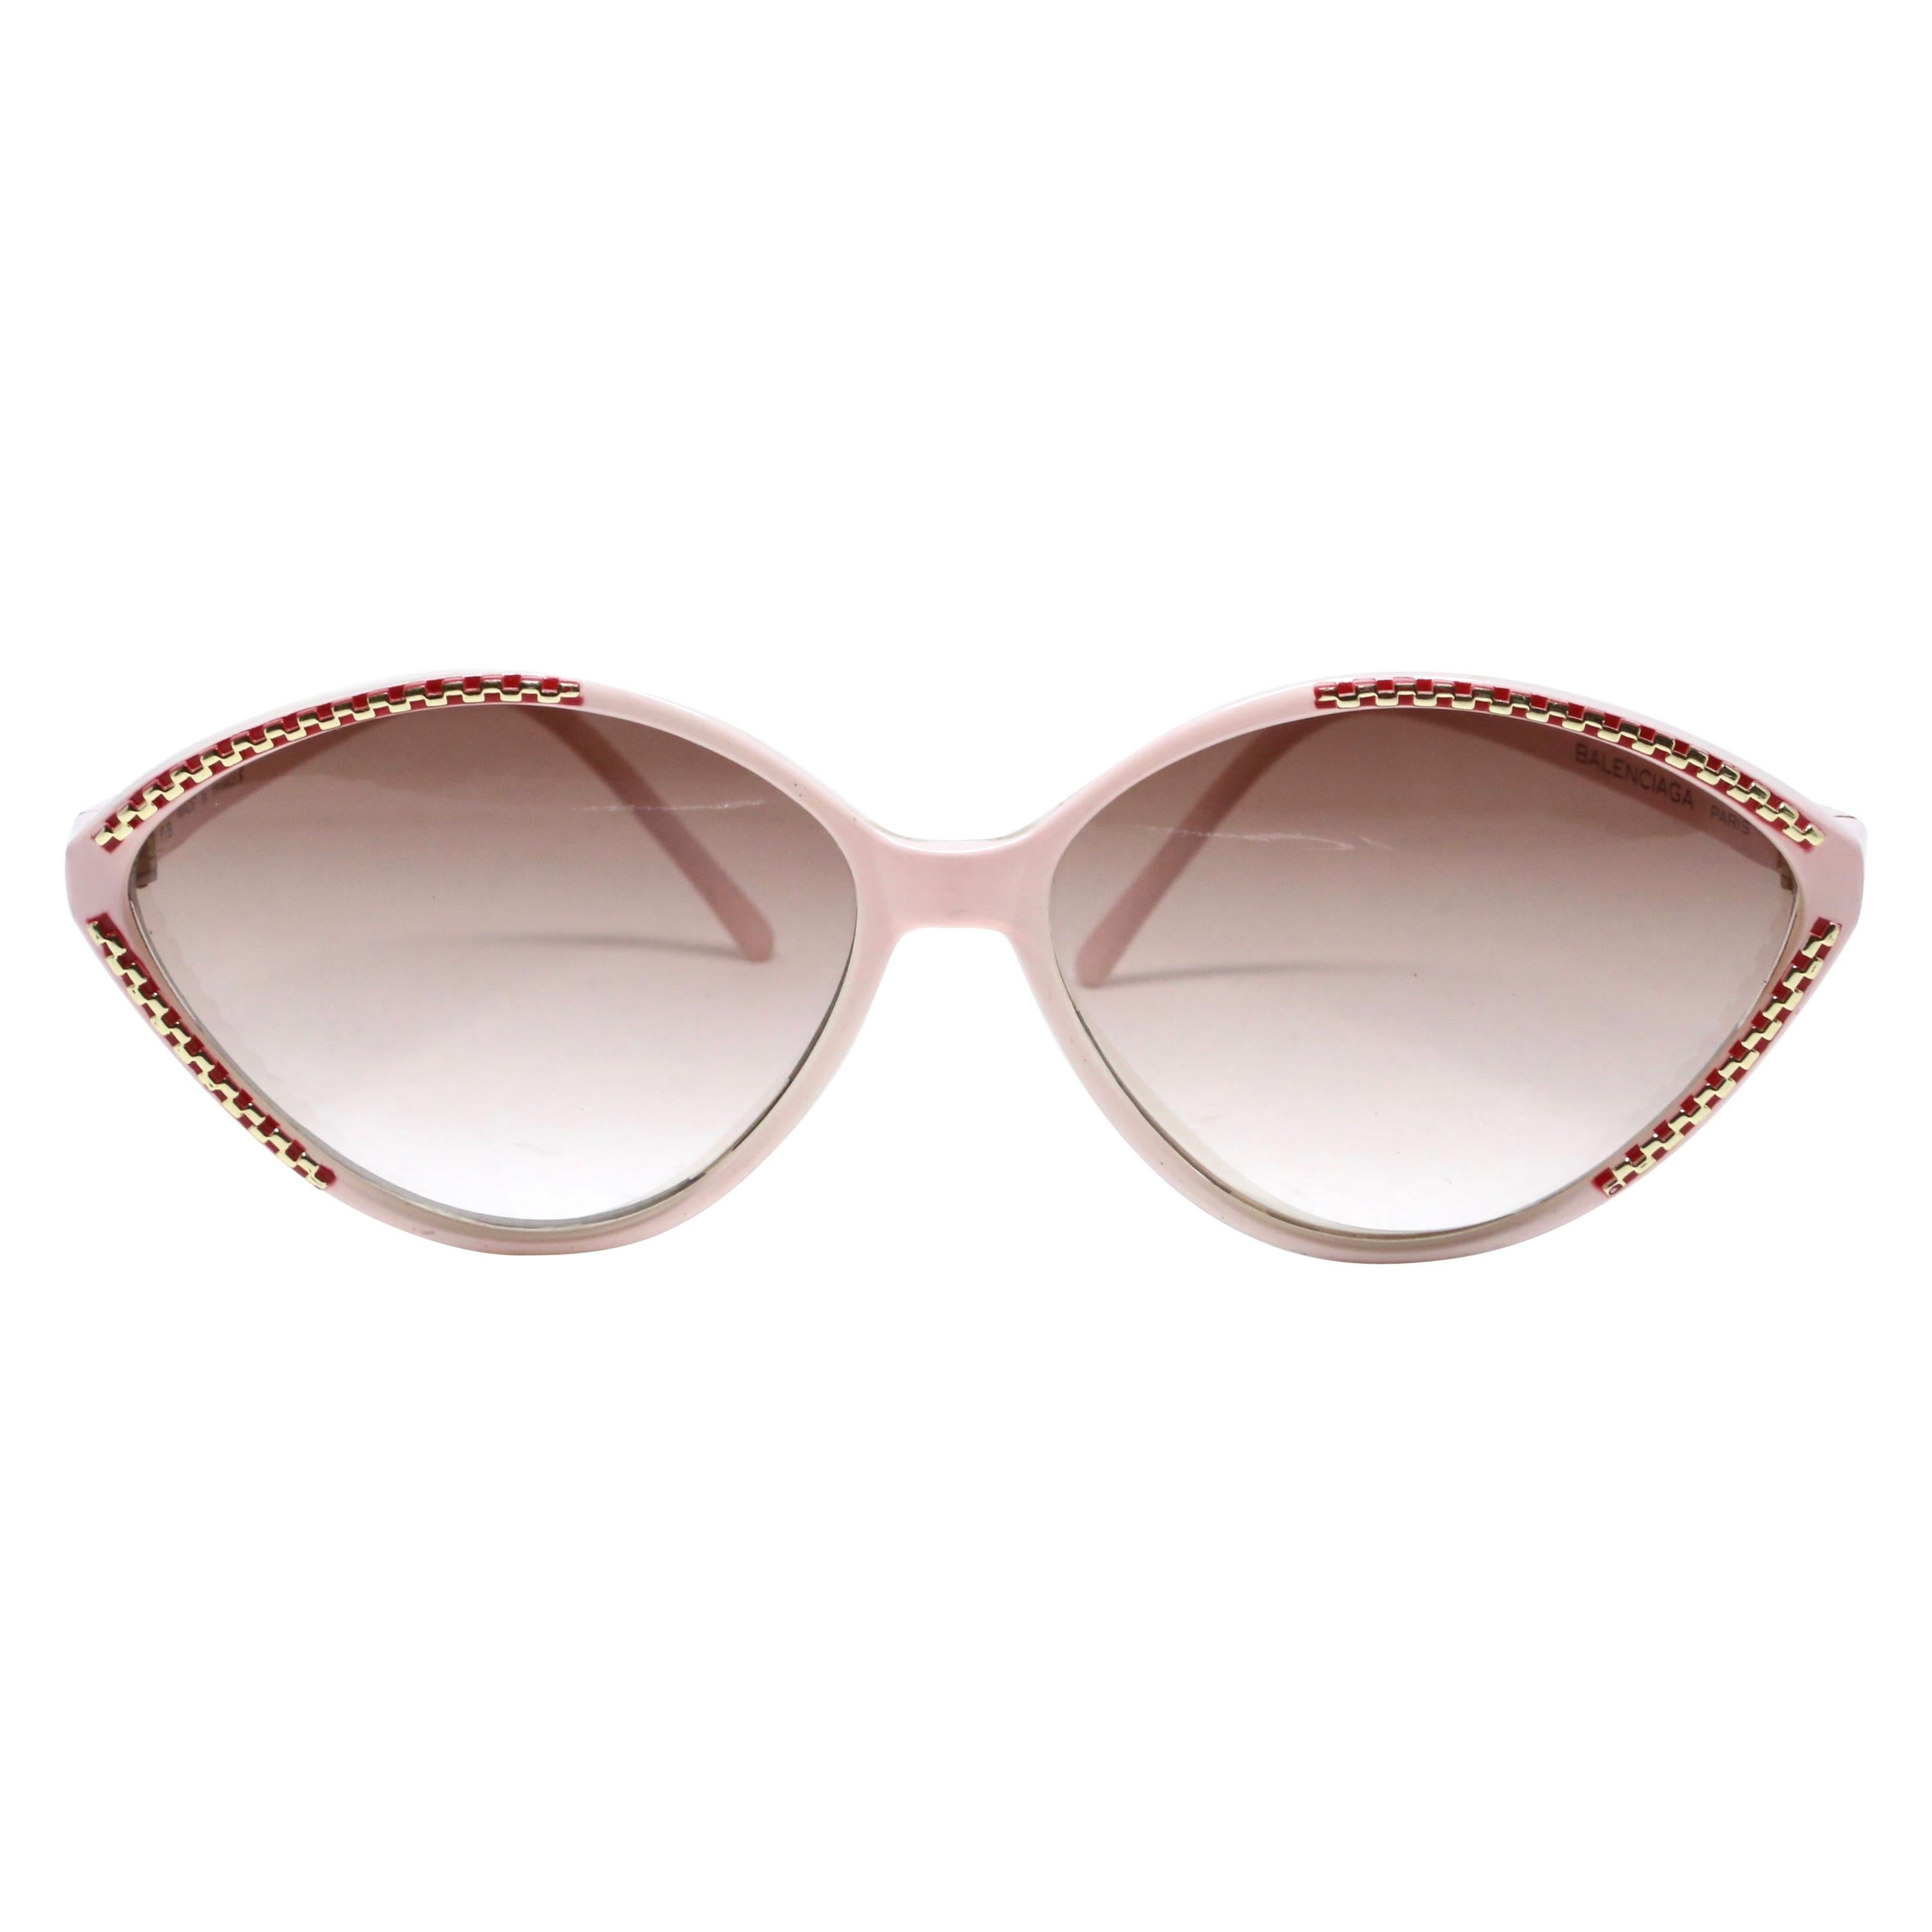 1980's BALENCIAGA pink and burgundy plastic sunglasses with gold accents